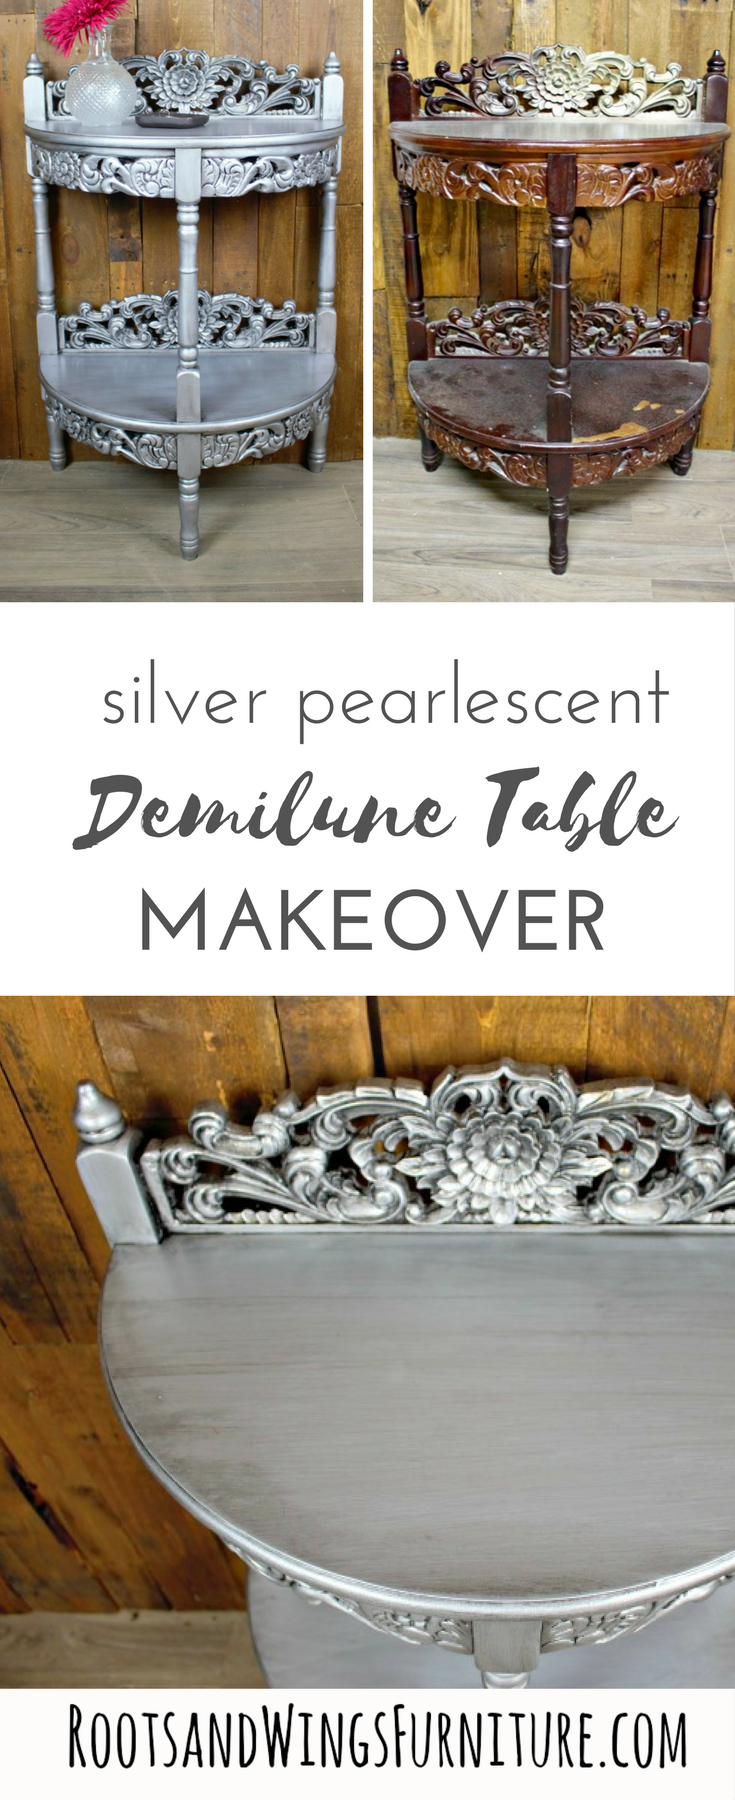 silver demuline table pin